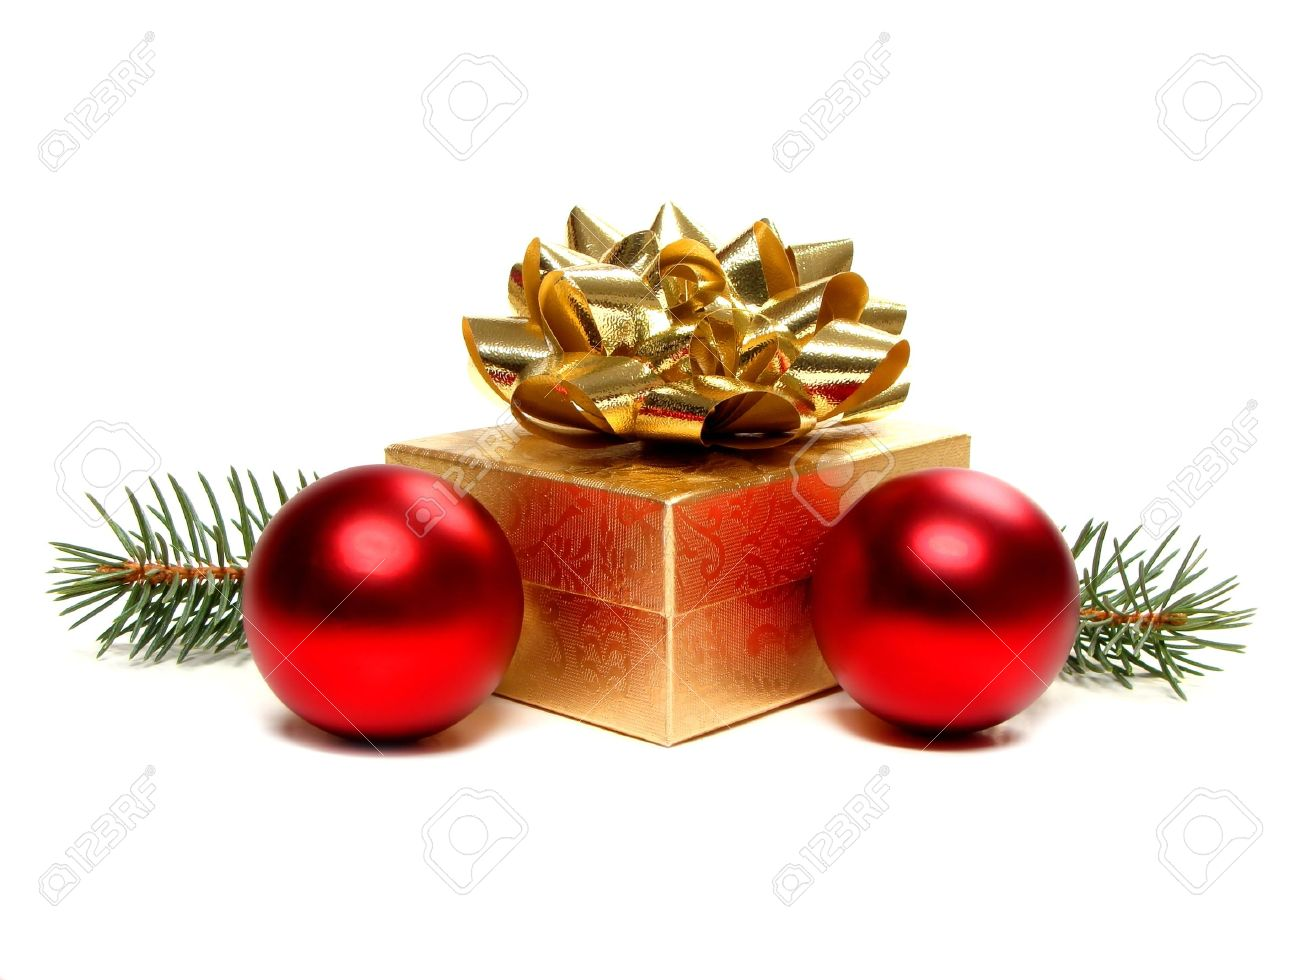 Gold and red ornaments - Gold Christmas Gift Box With Bow And Baubles Stock Photo 11074593